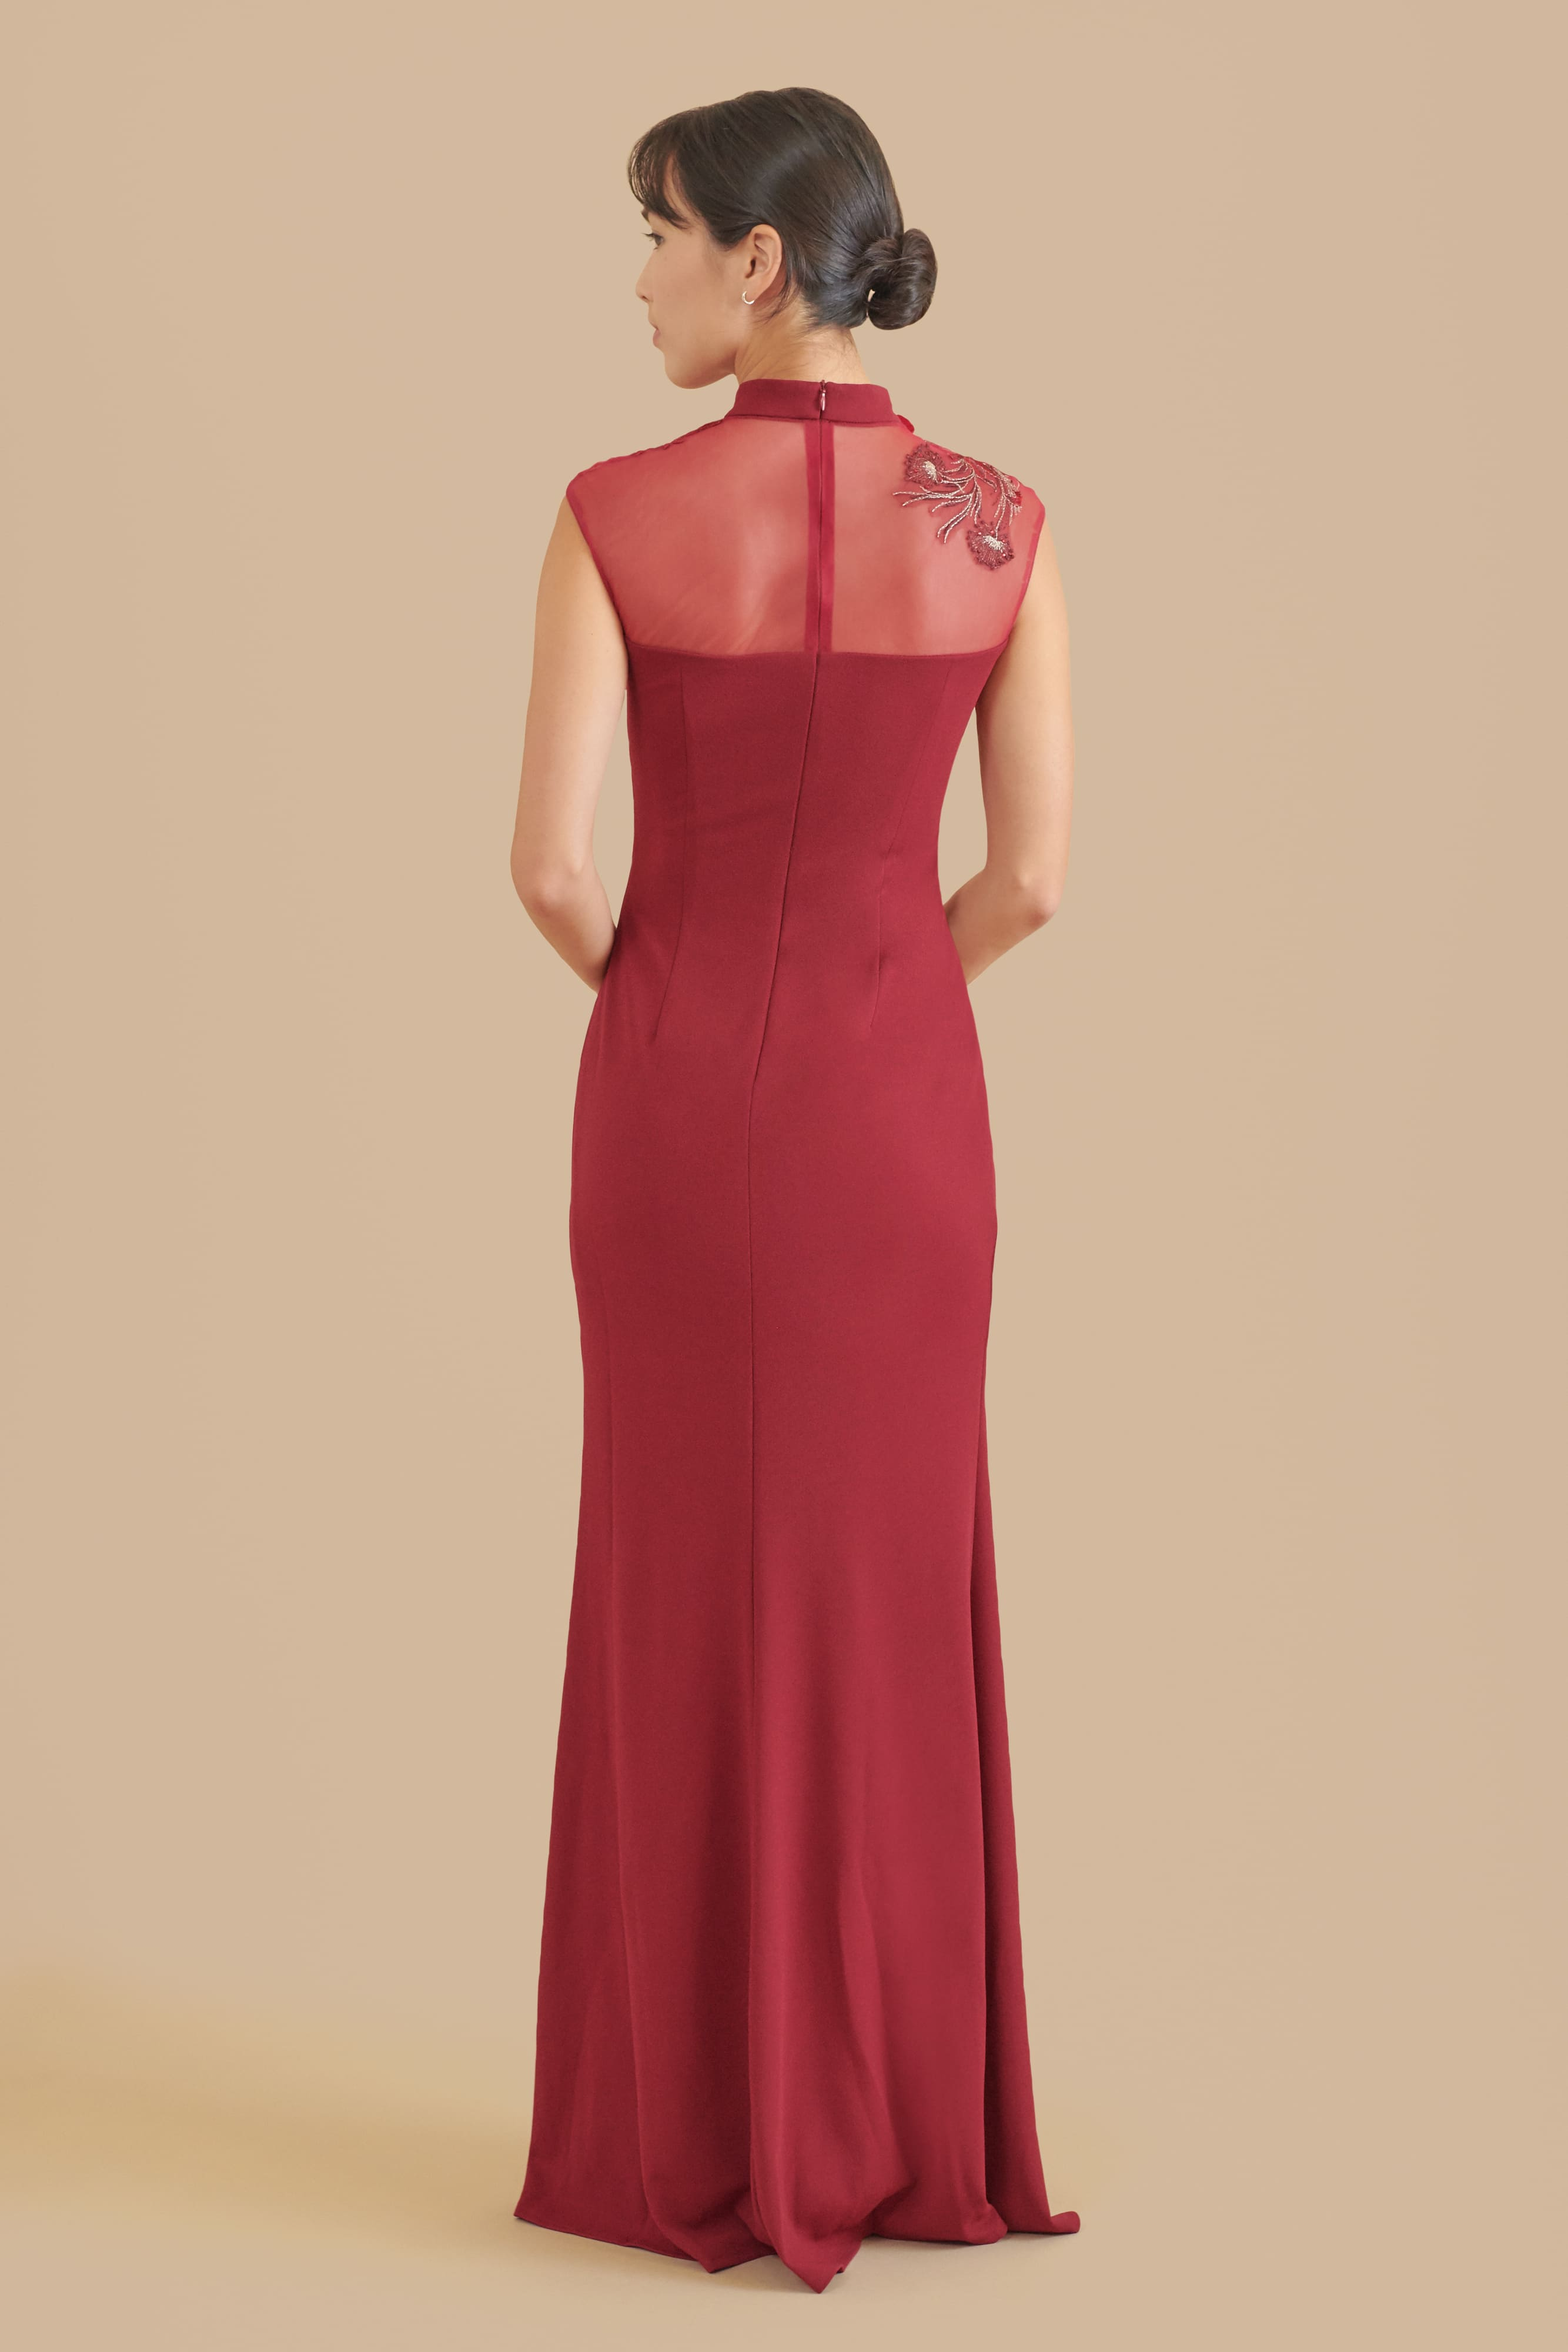 Wine Red Marilyn Dress | Modern Chinese Wedding Dress